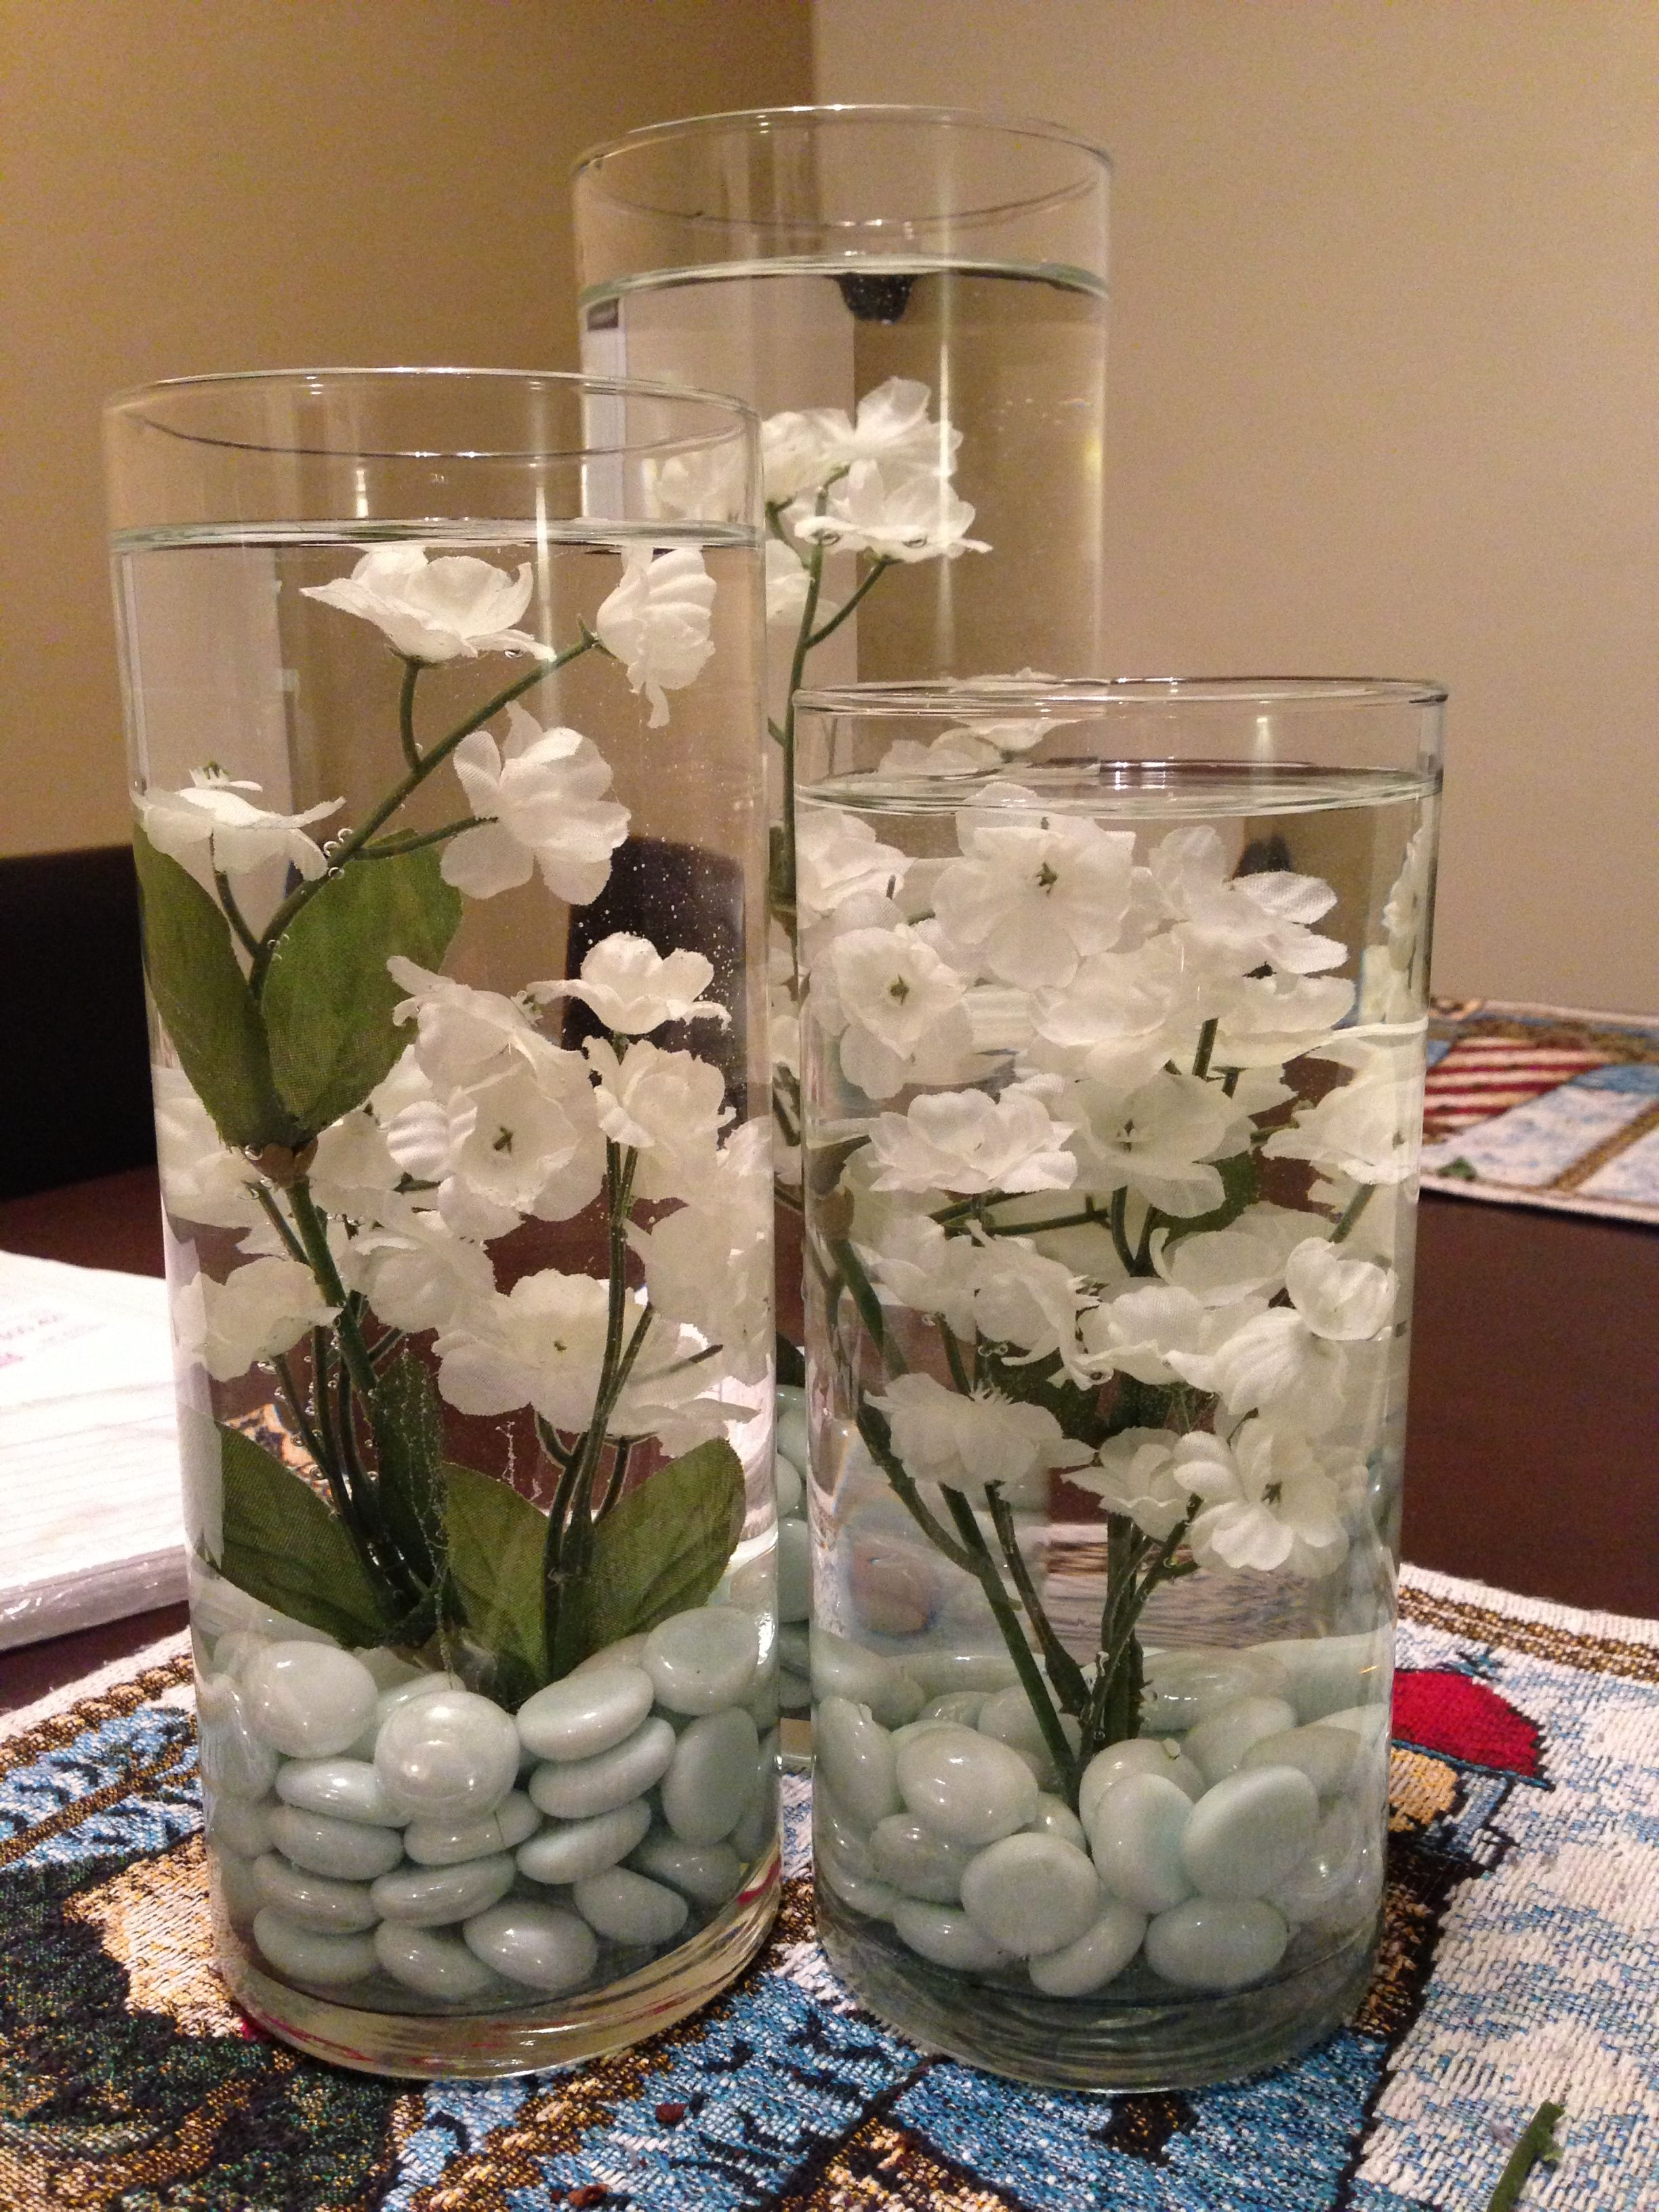 Diy Dining Table Centerpiece It Was So Easy Just Got The Supplies At Michael S And I M Adding Floating Candles To Top